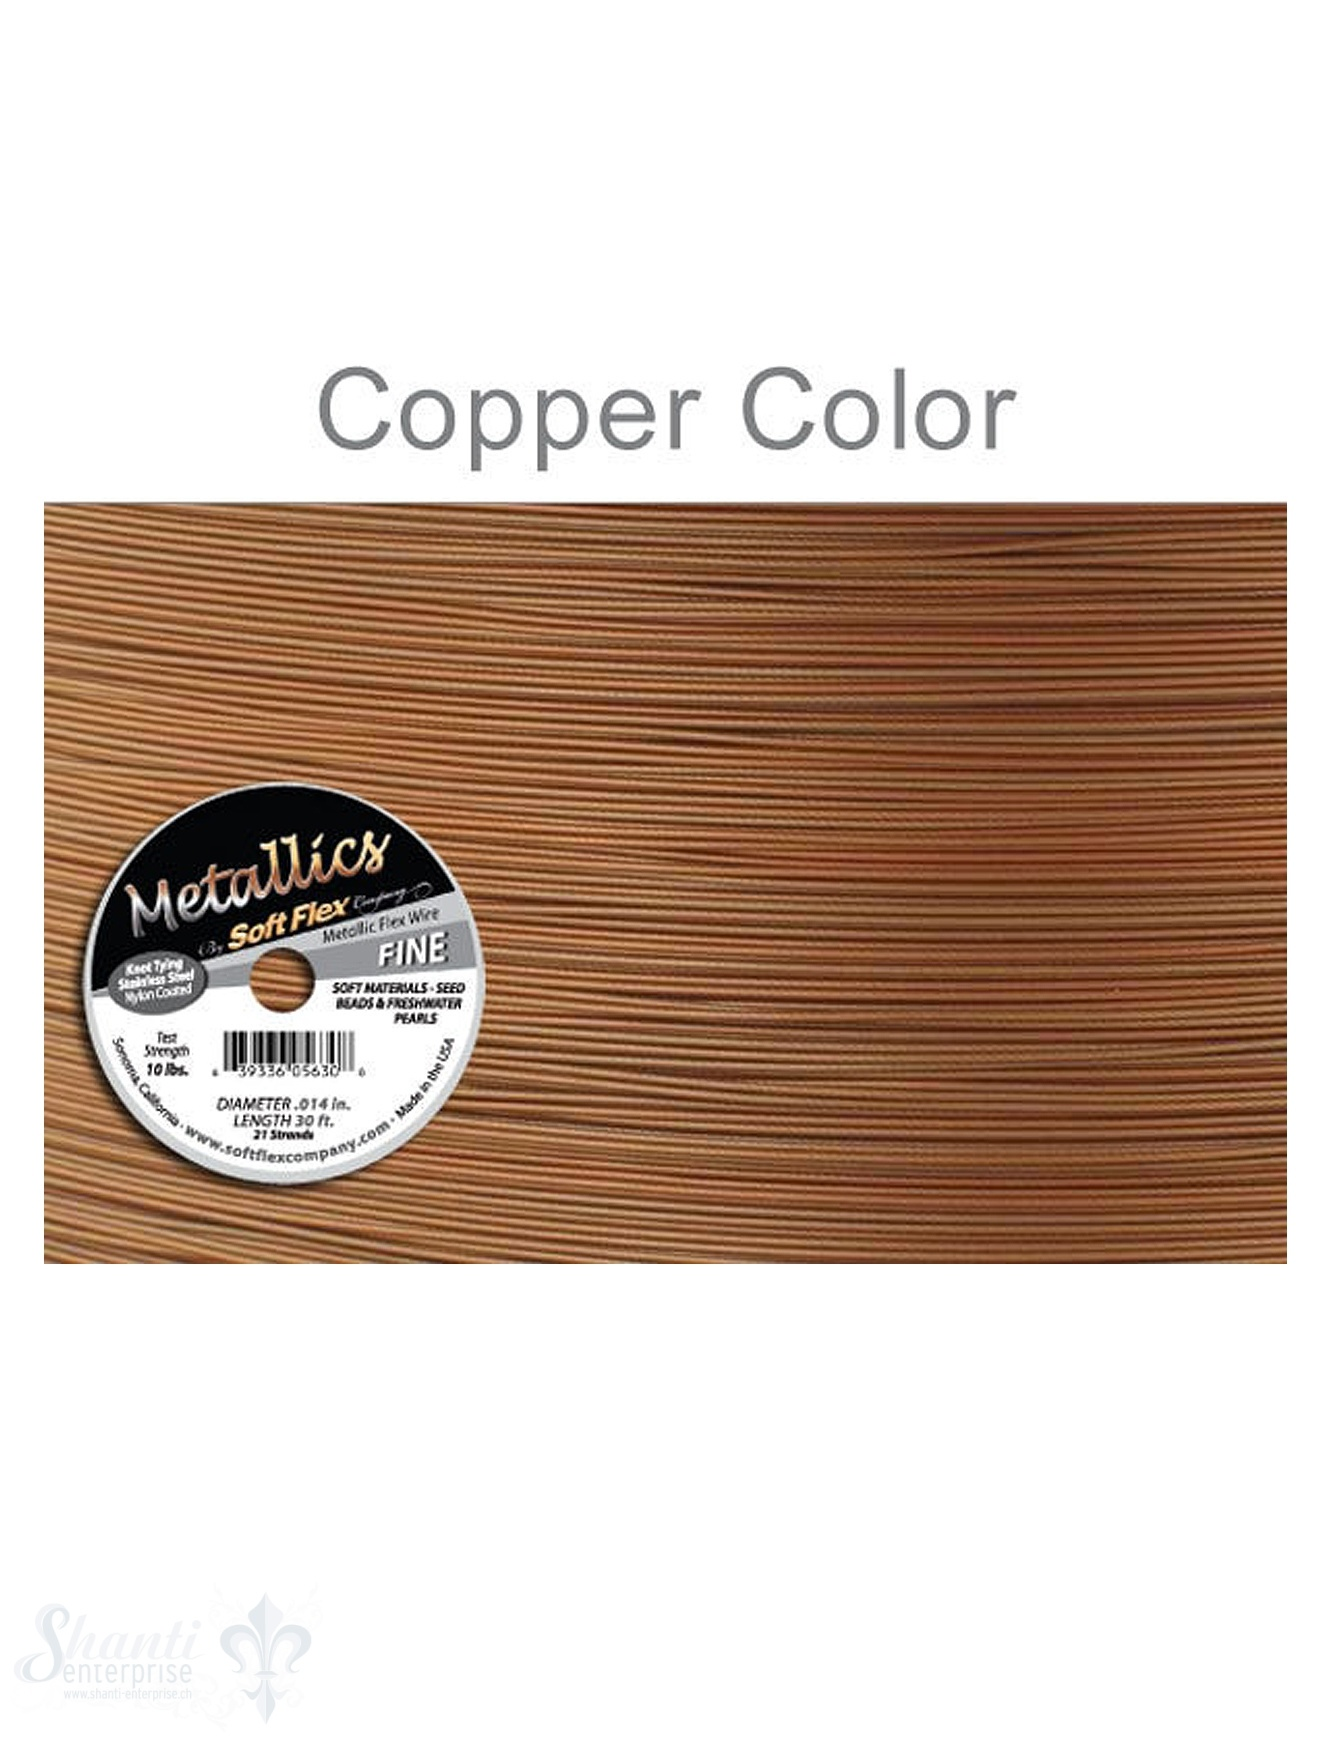 Soft Flex Soft Flex Metallic Flex Wire Copper Draht